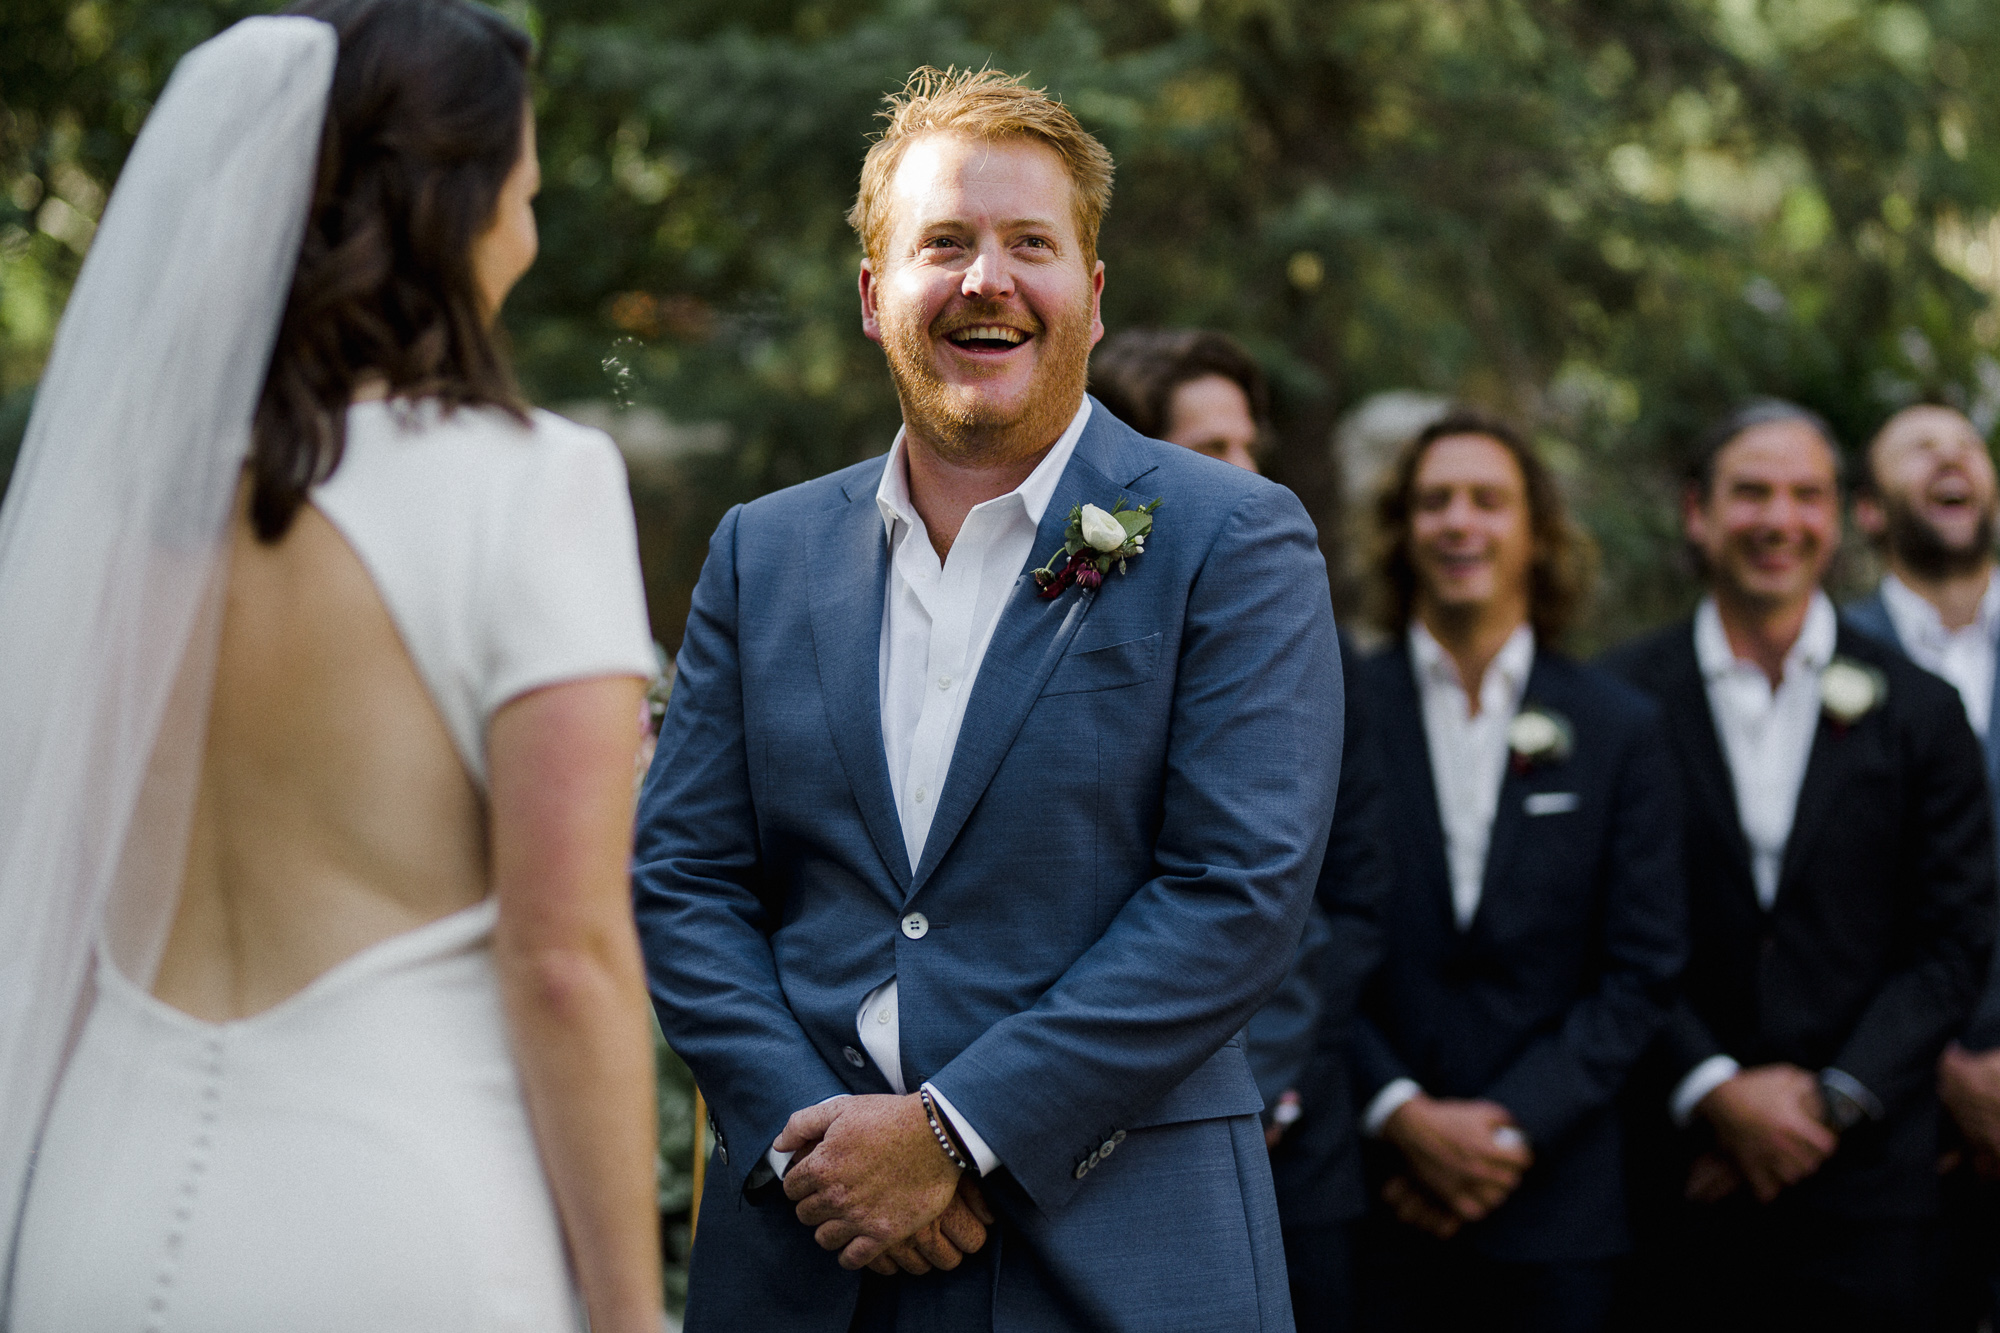 Groom Smiling at Ceremony.